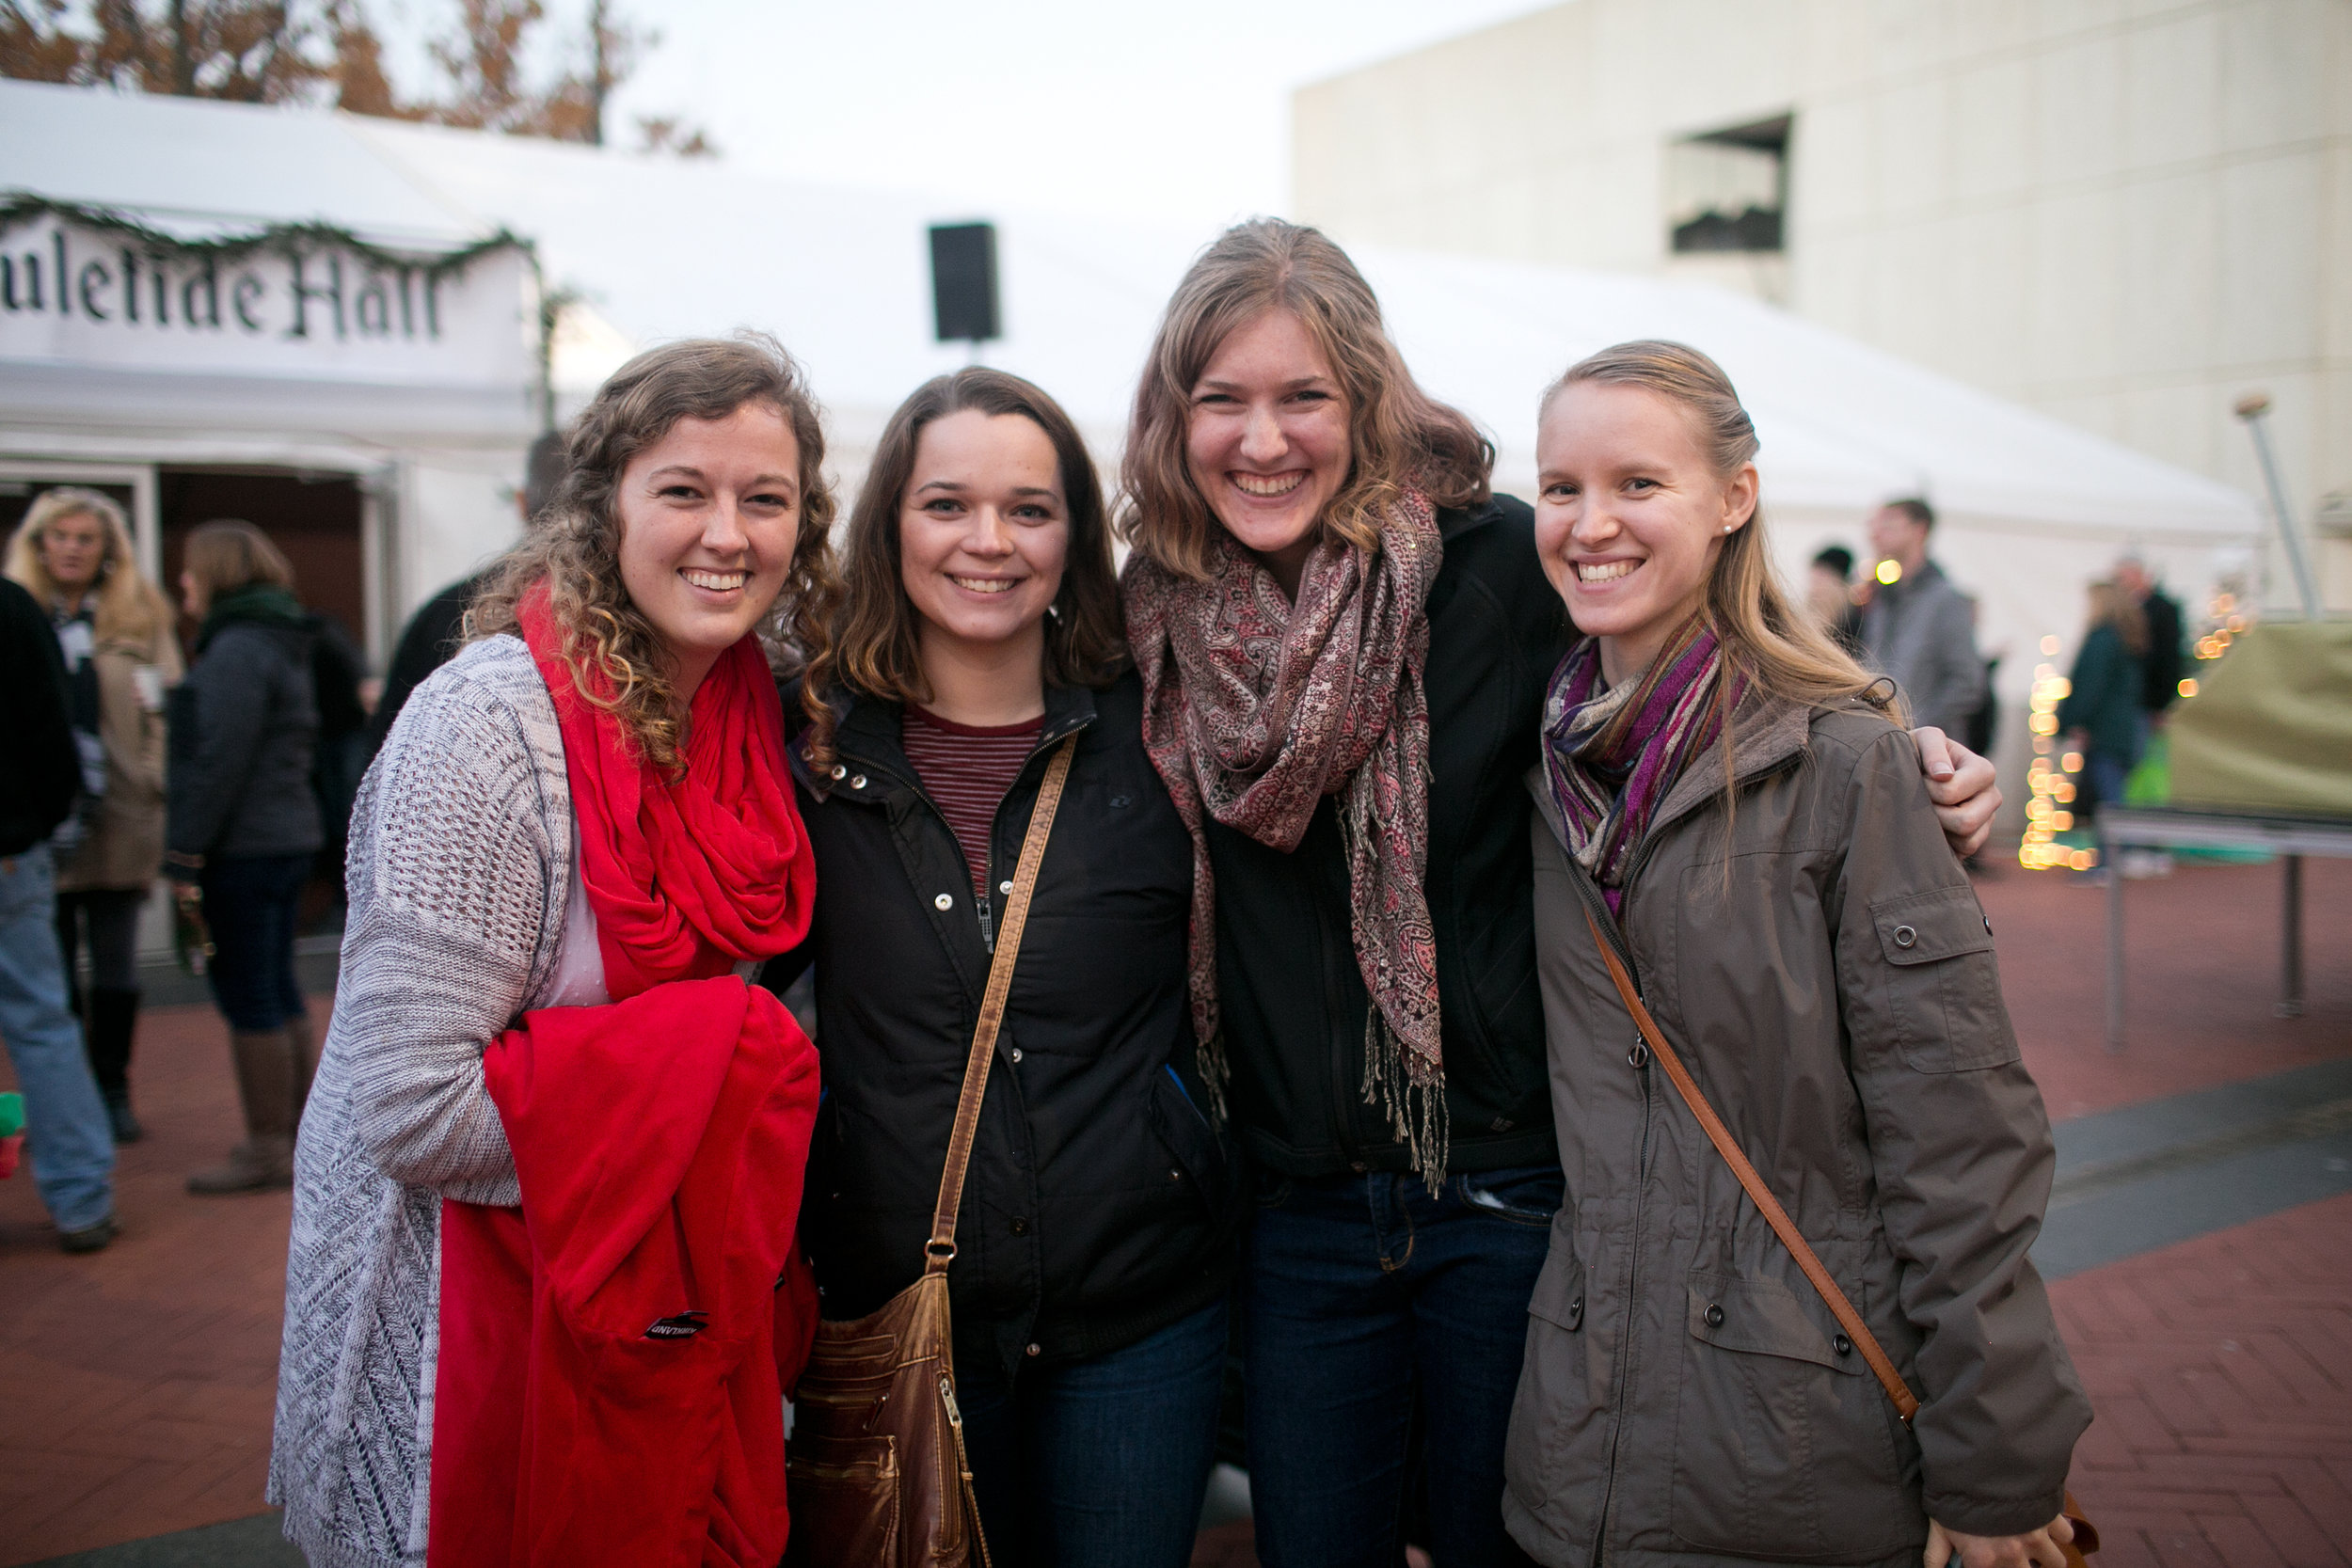 Four Iowa State University students visit Cowles Commons during the Des Moines Christkindlmarket in December.